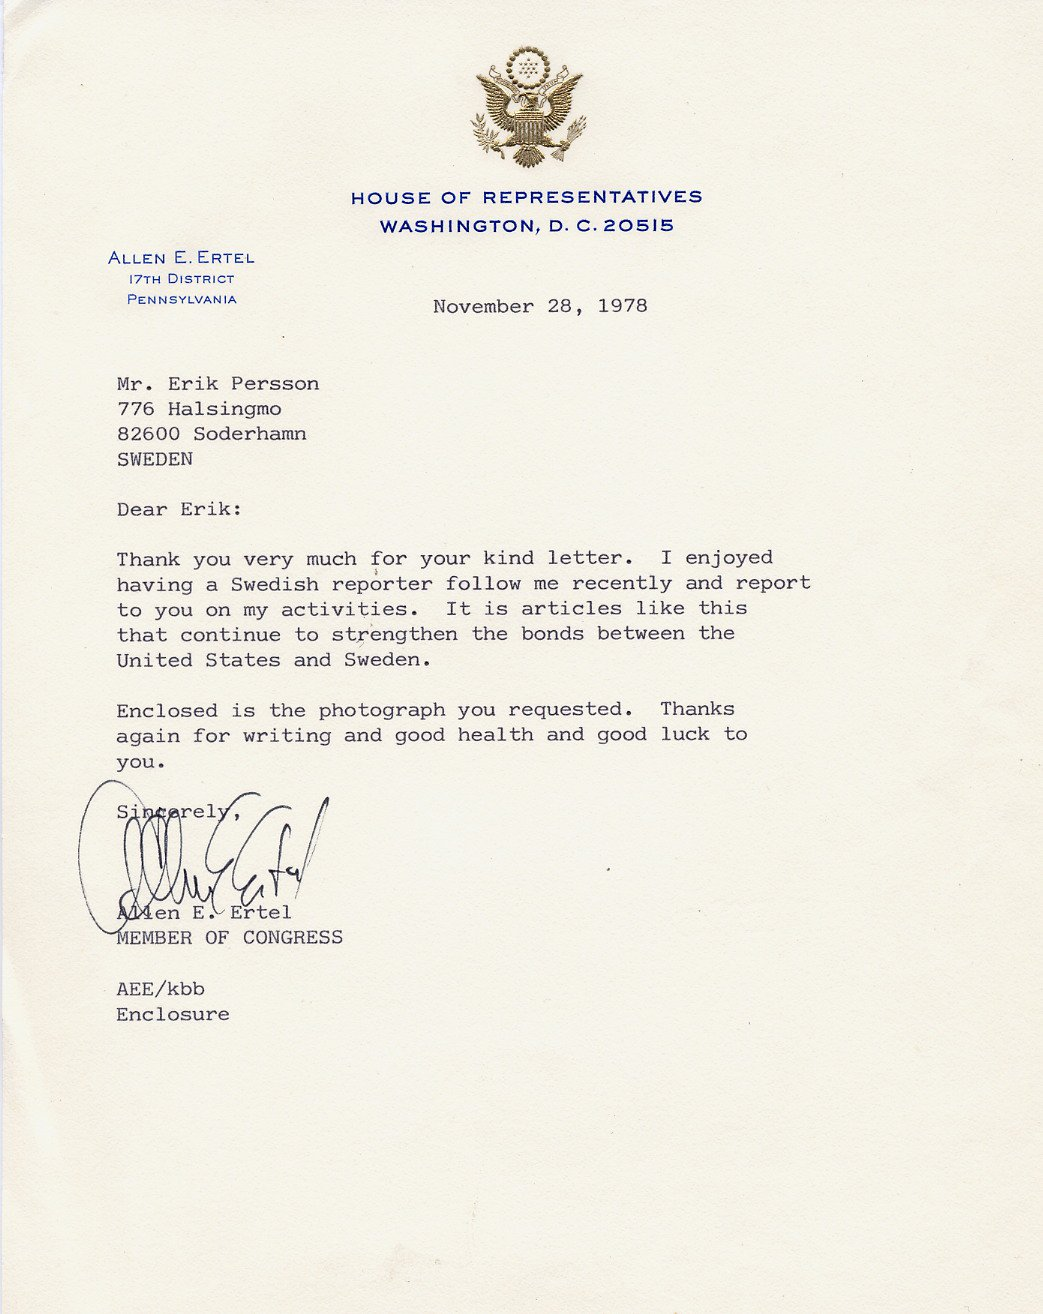 1977-83 US Representative from PA ALLEN E. ERTEL Typed Letter Signed 1978